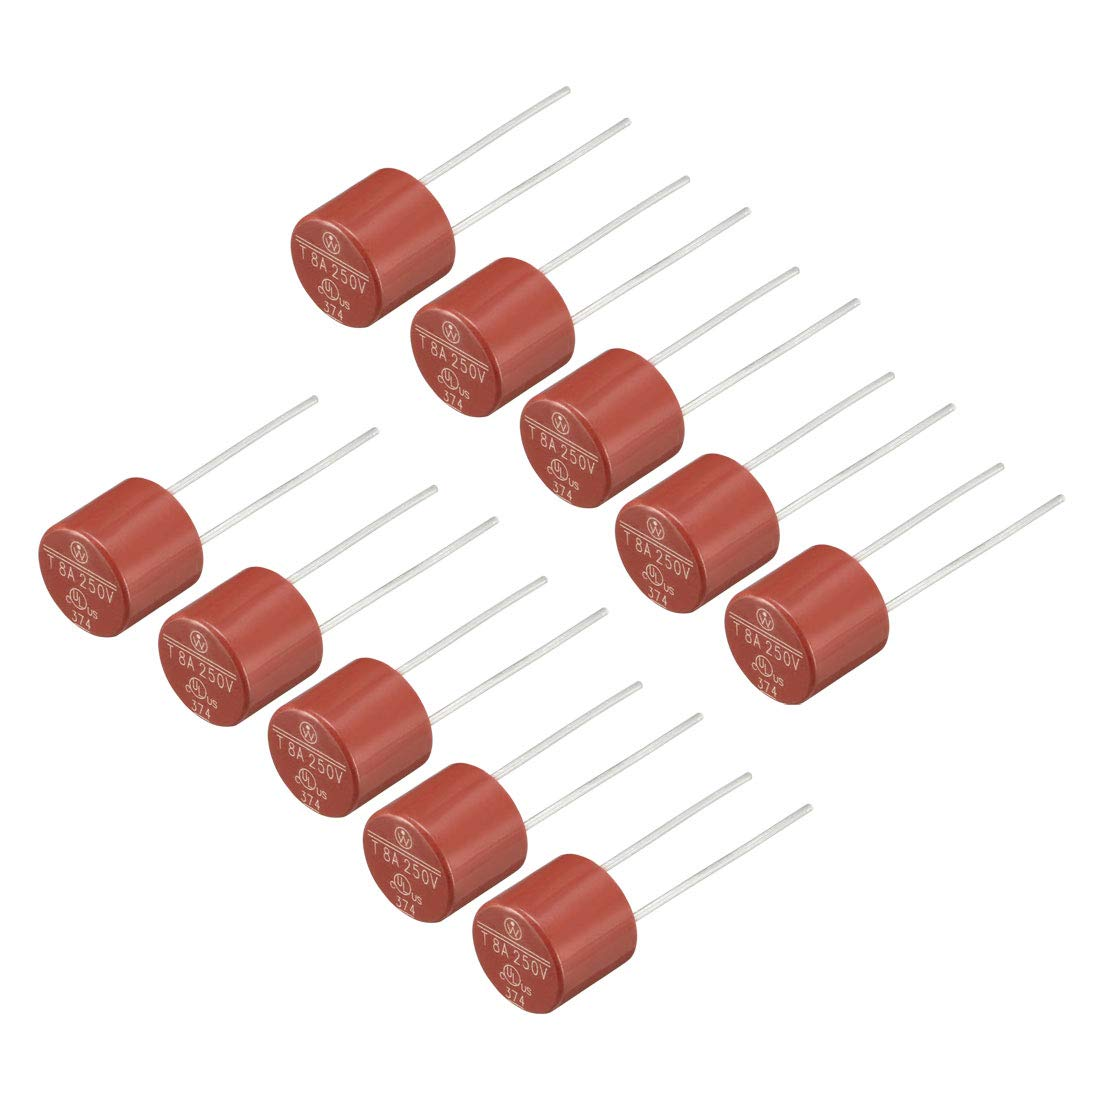 uxcell 10Pcs DIP Mounted Miniature Cylinder Slow Blow Micro Fuse T2.5A 2.5A 250V Red